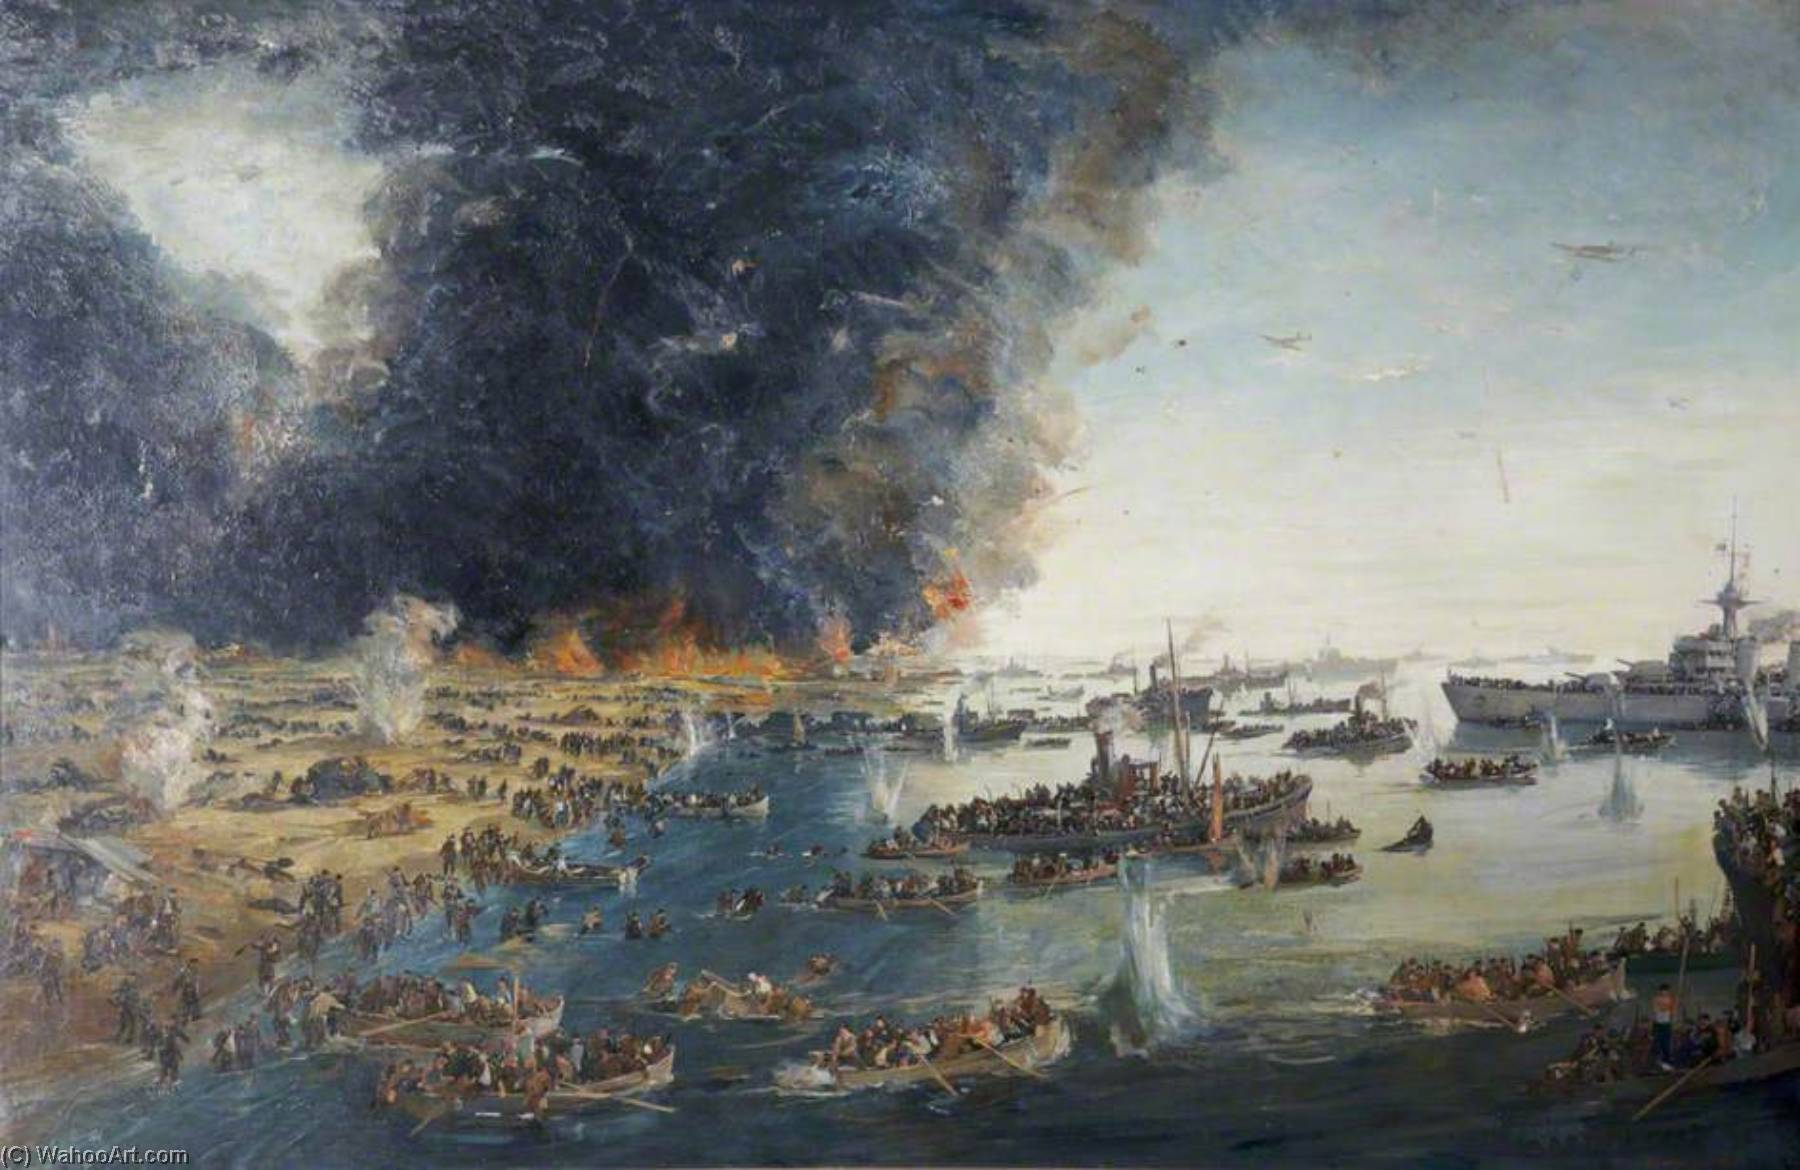 Dunkirk, Oil On Canvas by Charles Ernest Cundall